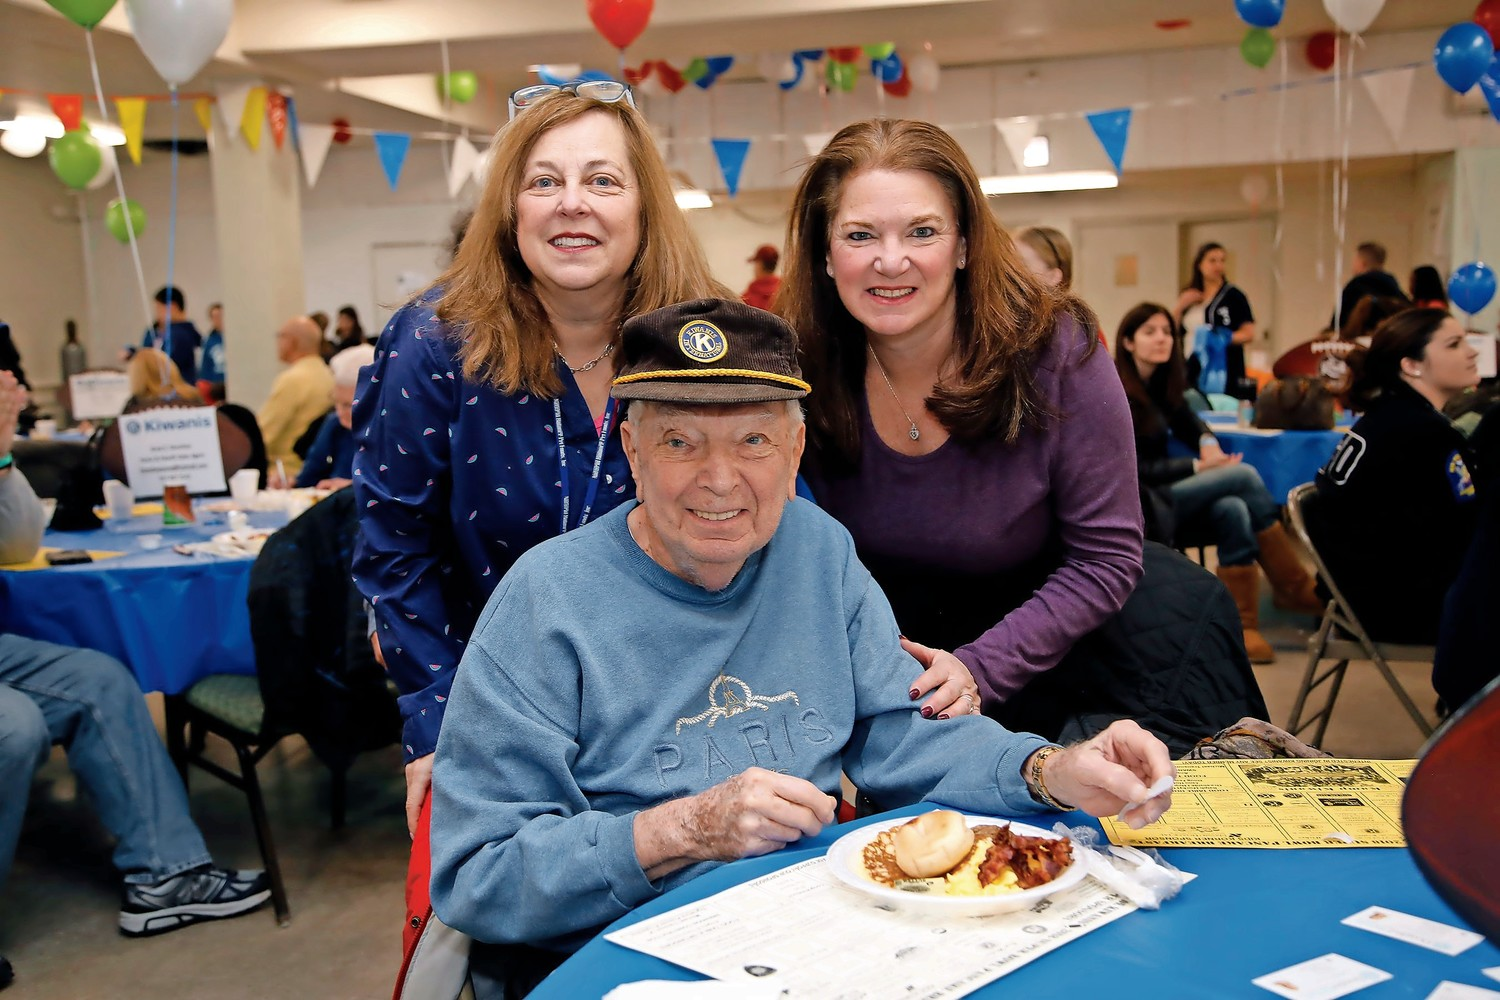 89-year old Kiwanian Dan Rosenberg with his daughters Penny Frondelli and Mindy Mirsky.